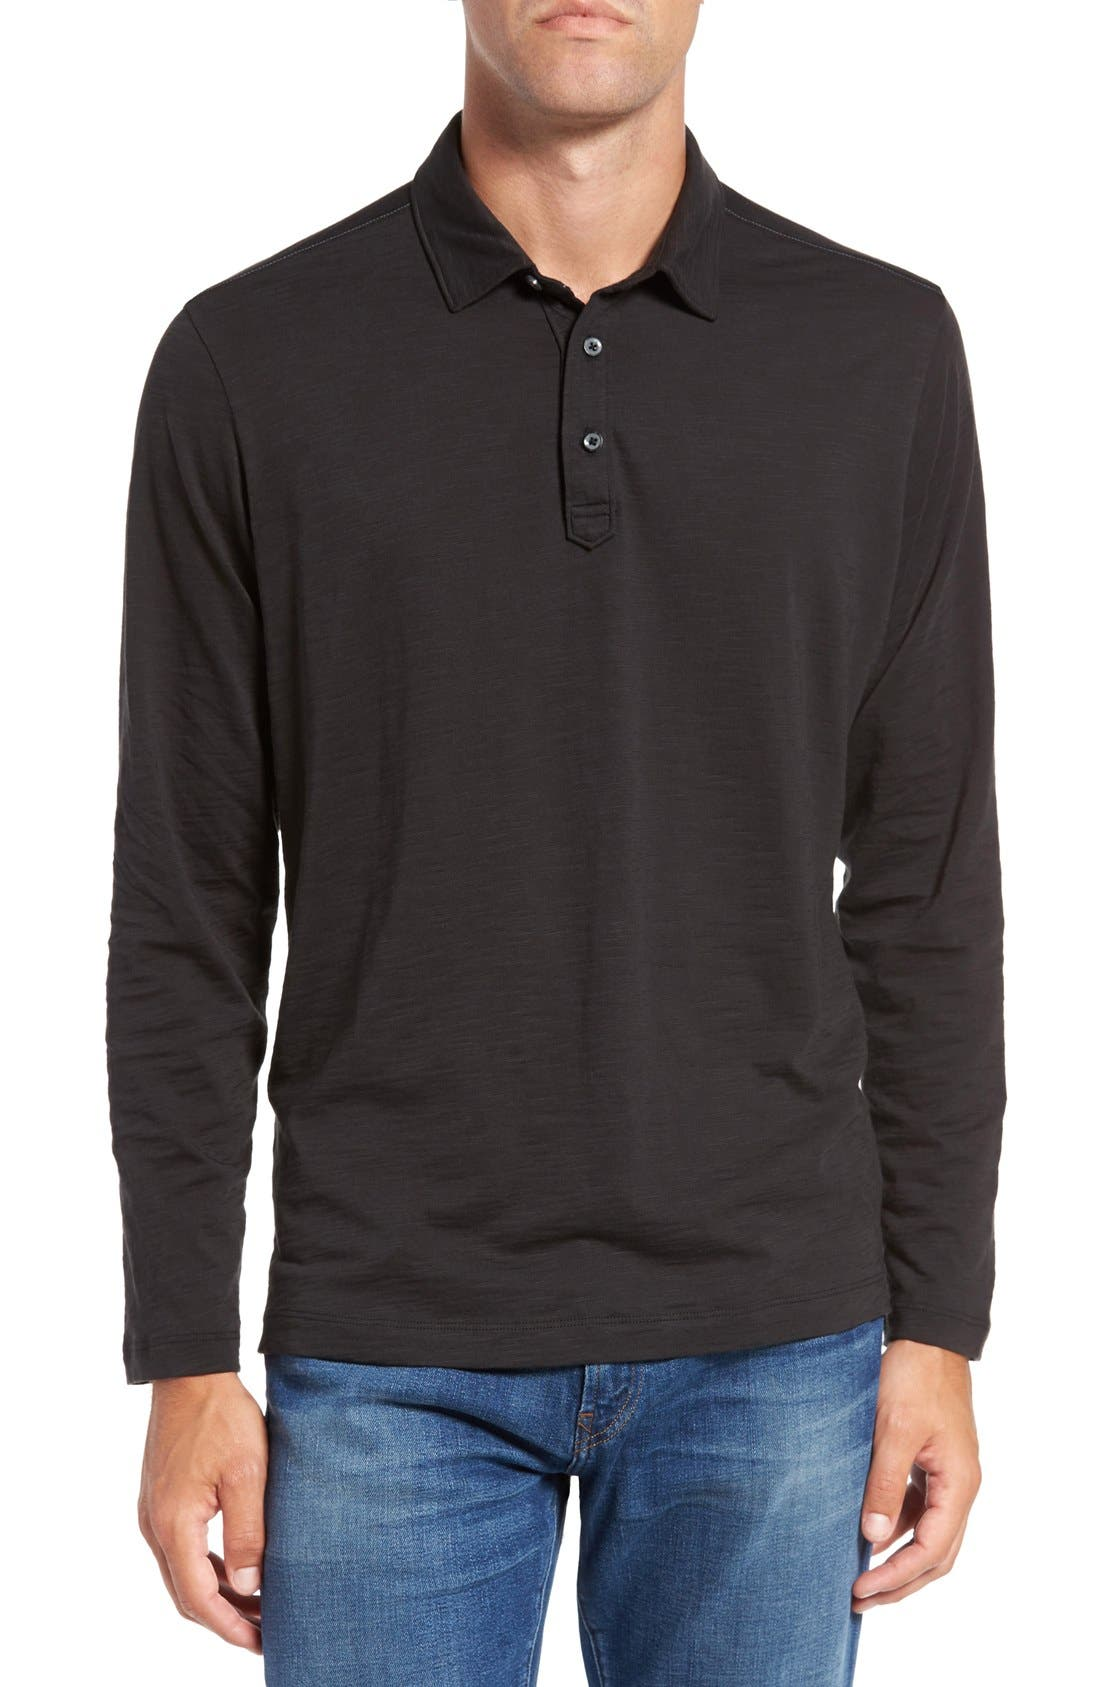 Main Image - Tommy Bahama 'Portside Player Spectator' Long Sleeve Jersey Polo